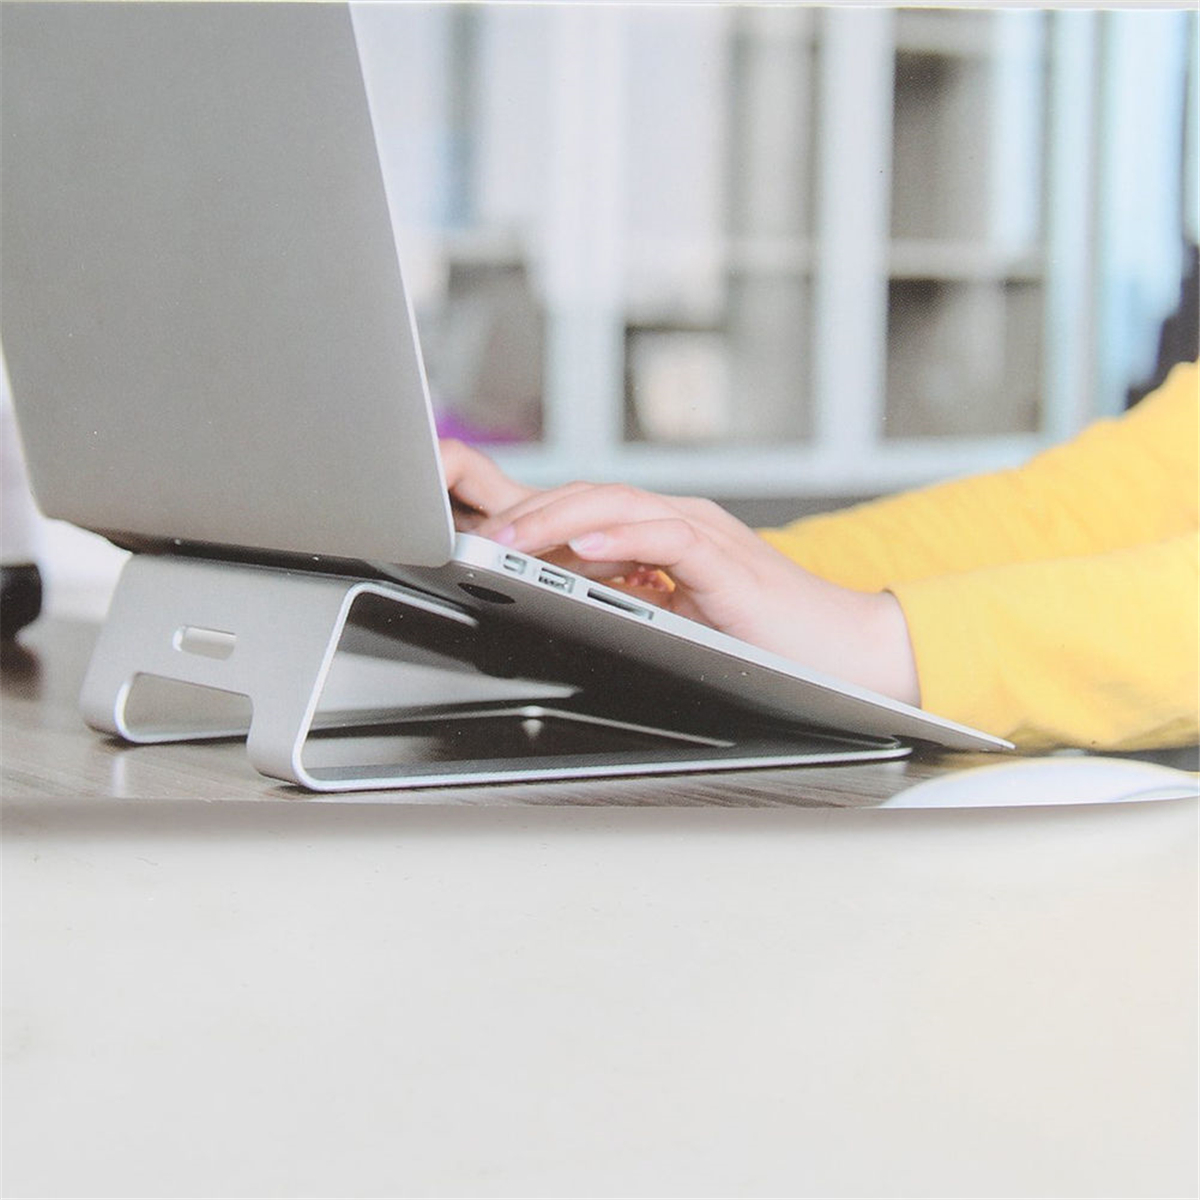 Aluminum Alloy Laptop Stand Tablet Holder Dock for MacBook Pro Air Notebook Computer Laptops PC Accessories Organizer Non Slip